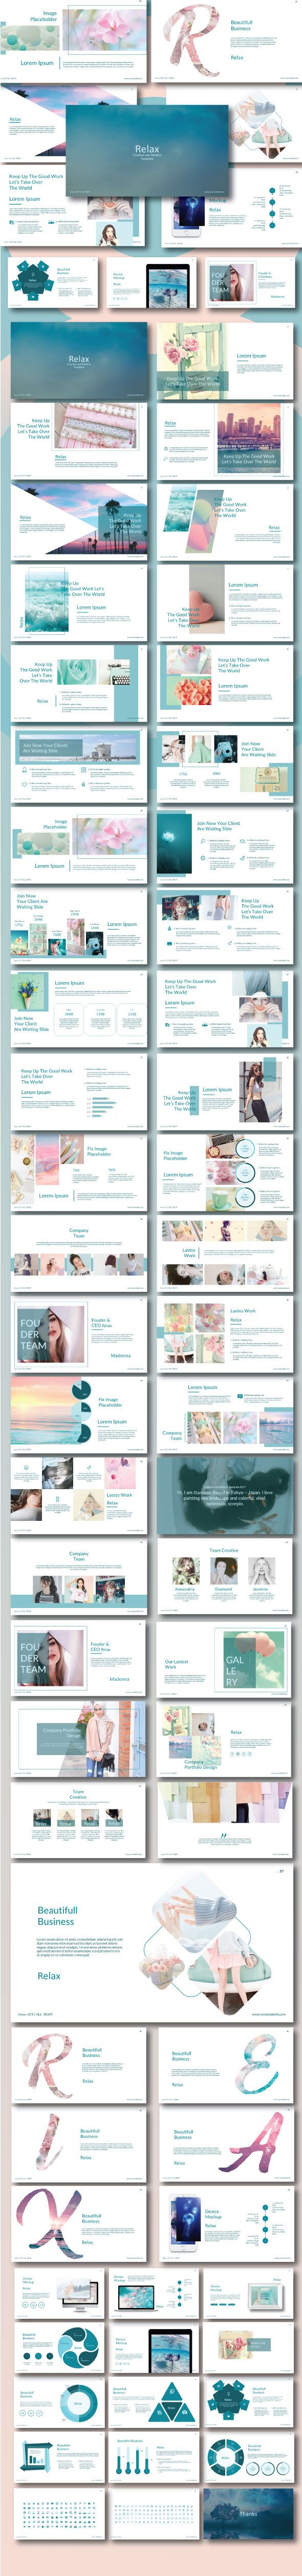 Relax - Creative Modern Google Slide Template - #Google #Slides Presentation Templates